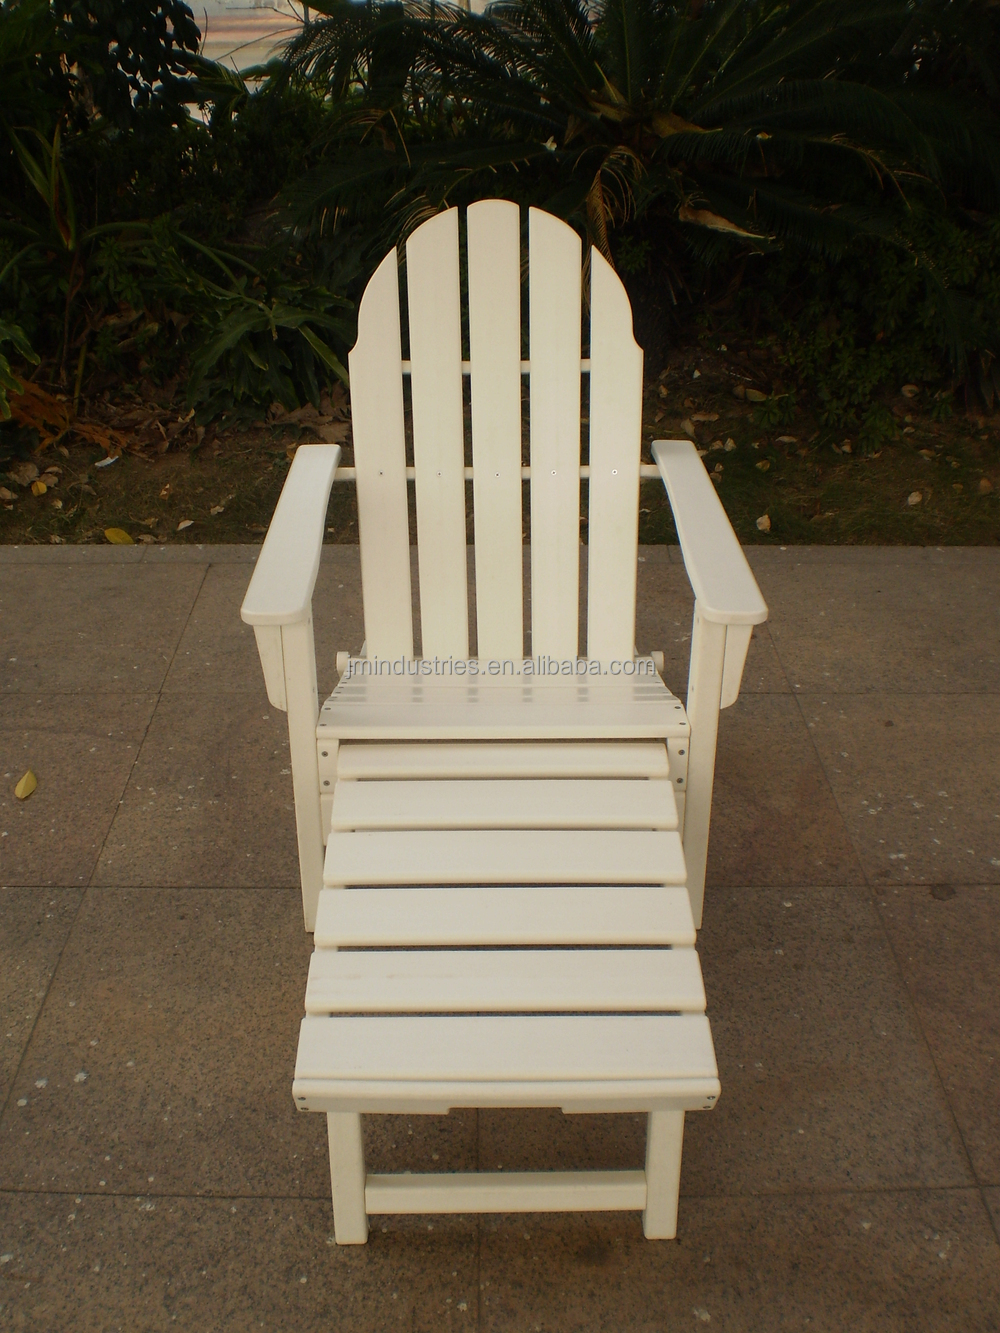 Plastic Wood Chair And Table Outdoor Ploywood Furniture